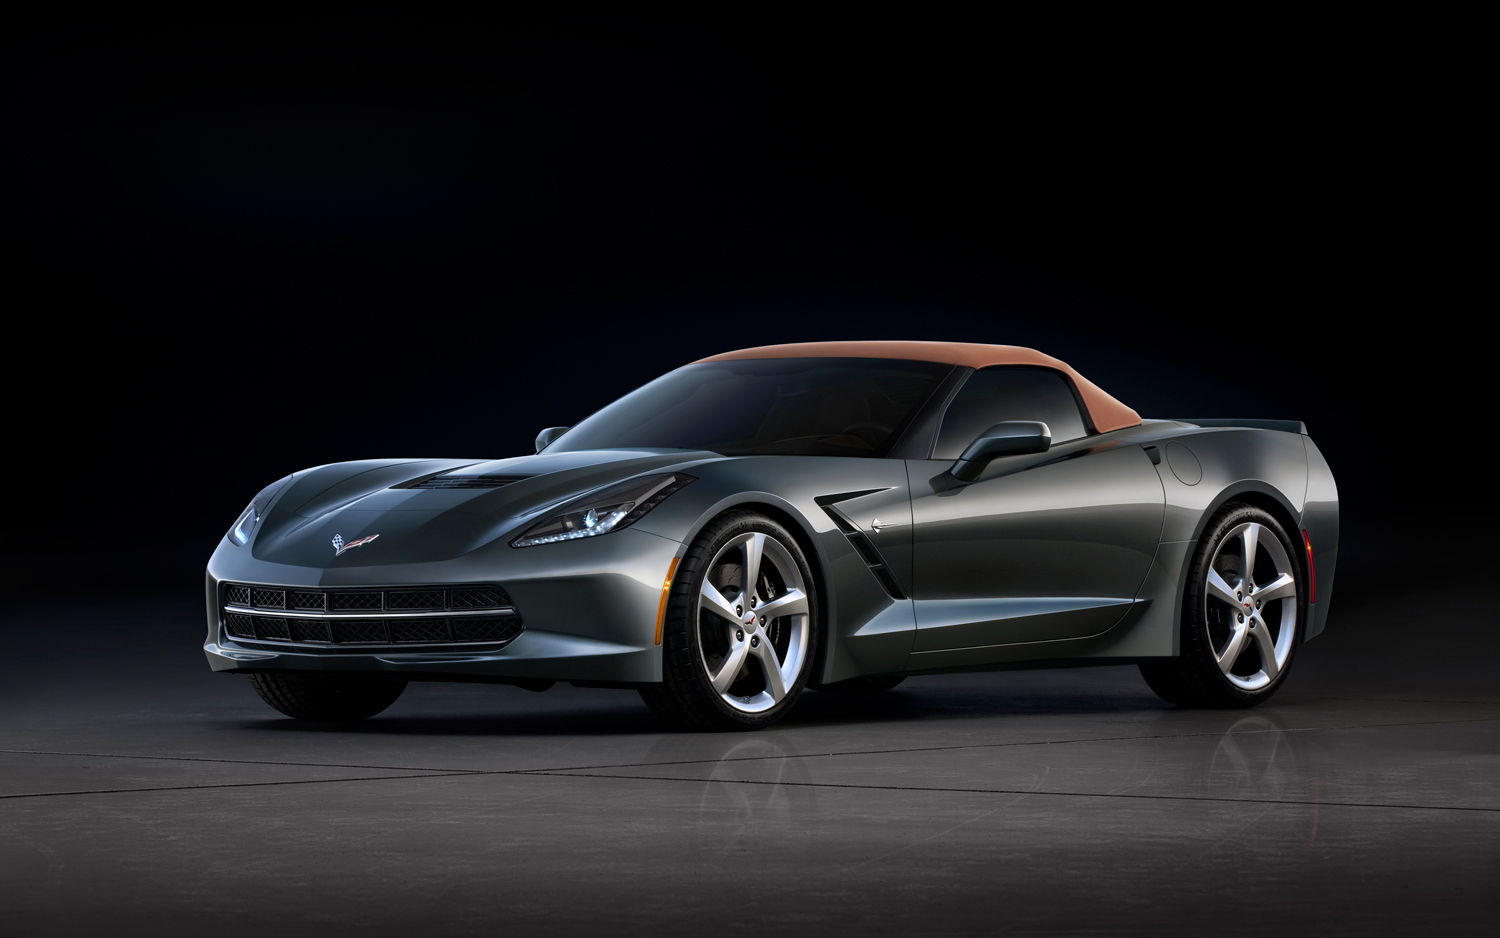 2014 corvette stingray black convertible 2014 Chevrolet Corvette Convertible Photo Gallery